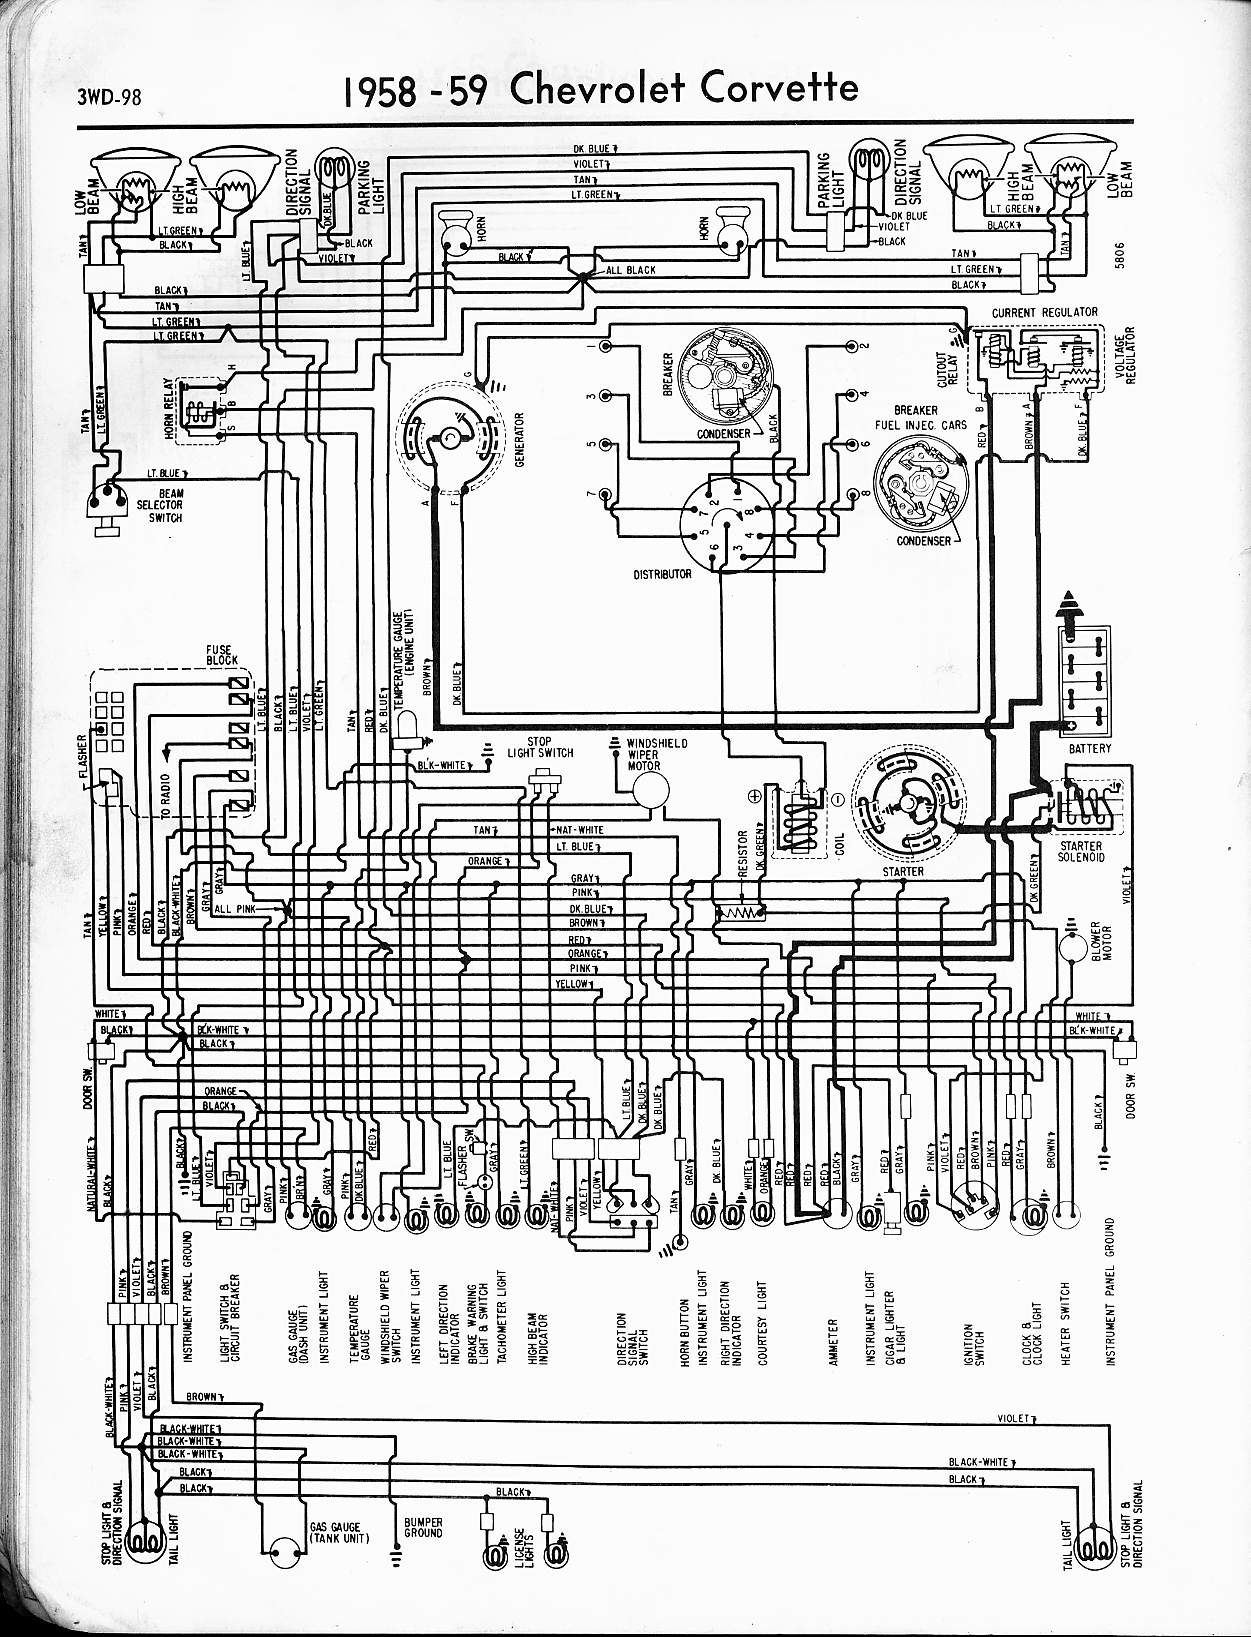 1965 impala engine compartment wiring diagram